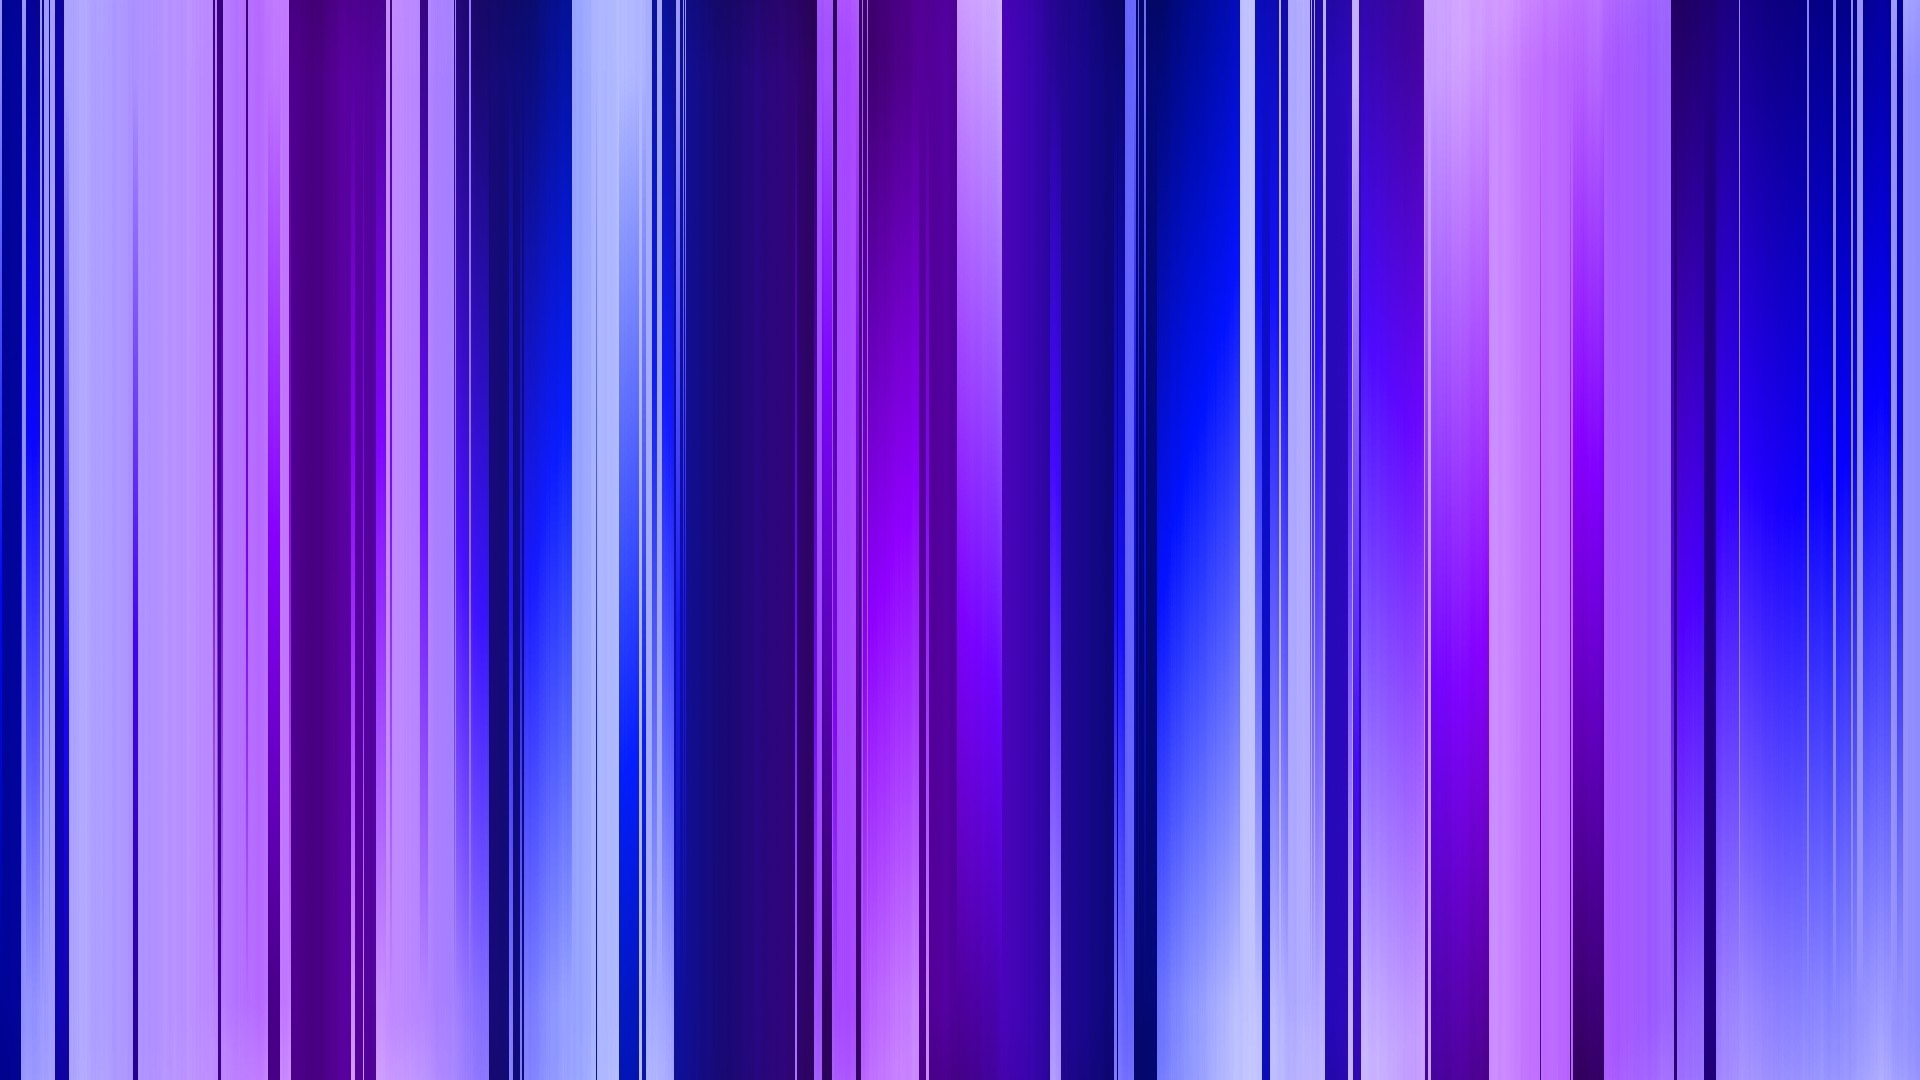 blue and purple background ·① download free cool wallpapers for